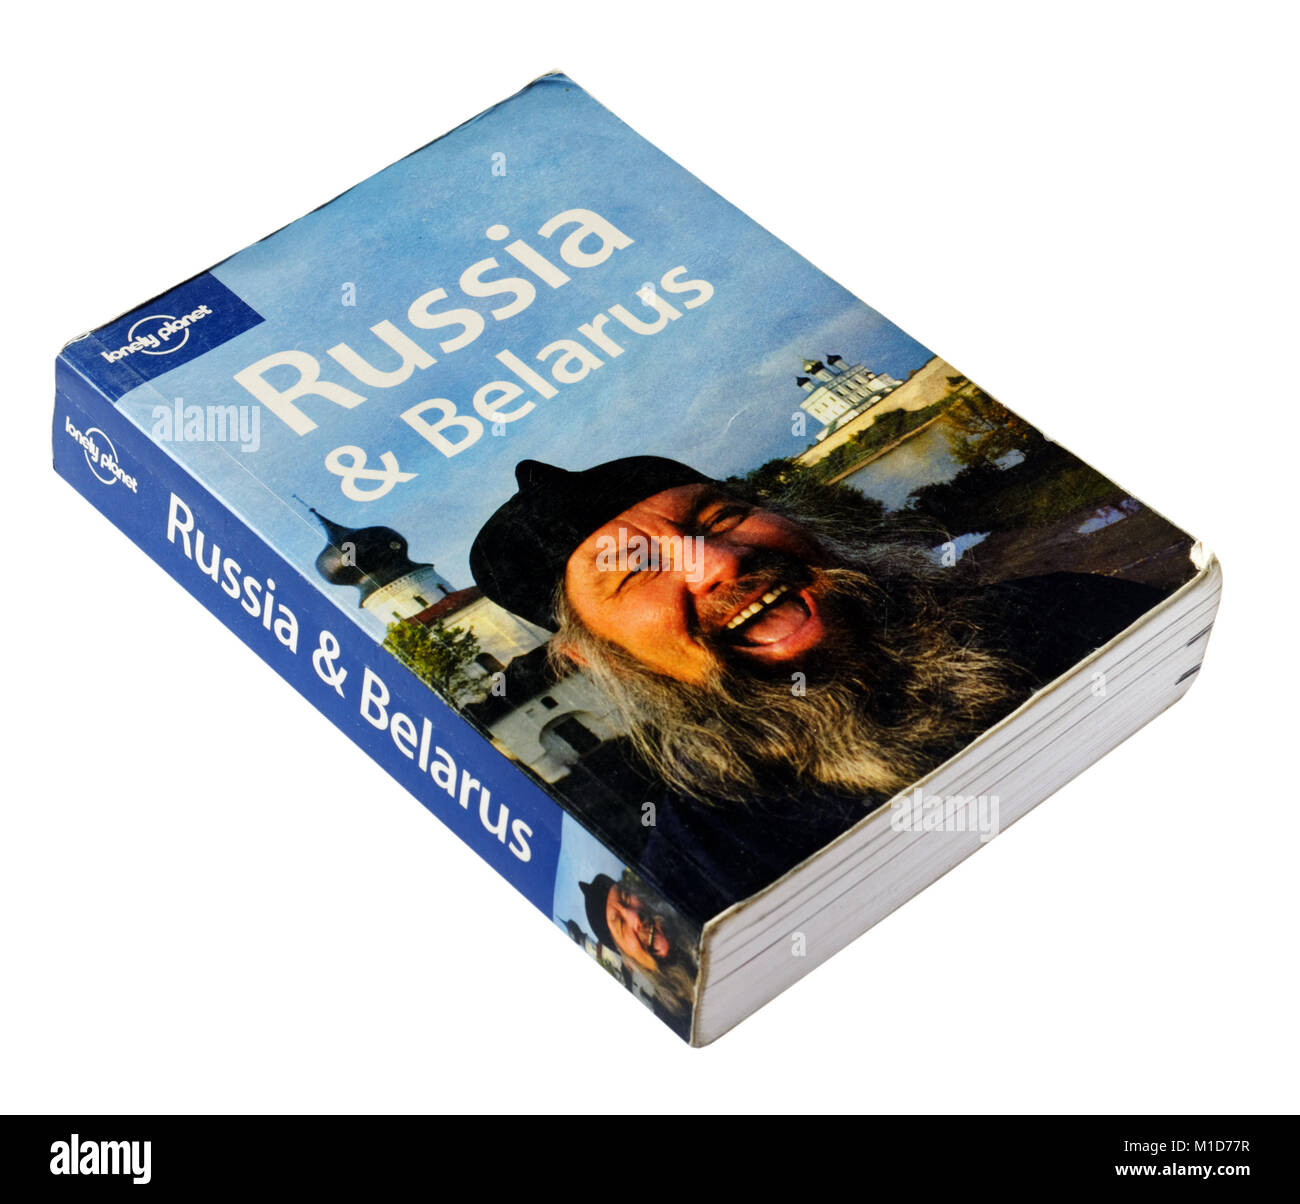 The Lonely Planet guide to Russia and Belarus - Stock Image